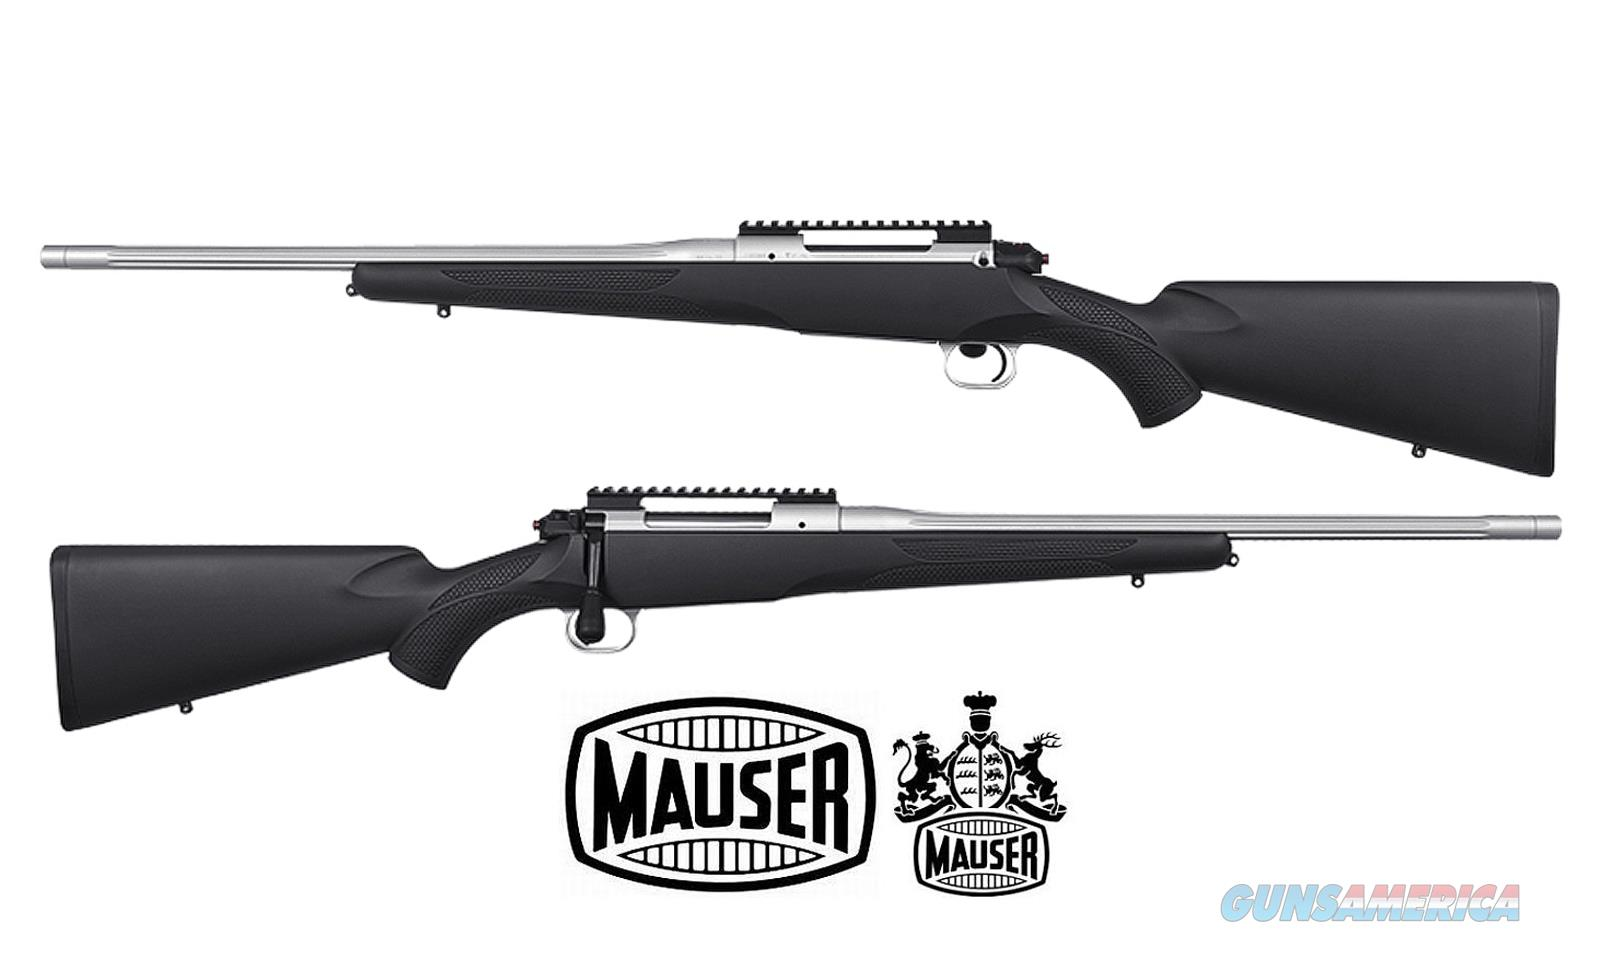 Mauser M12 Impact (Ilaflon coating)  Guns > Rifles > Mauser Rifles > German